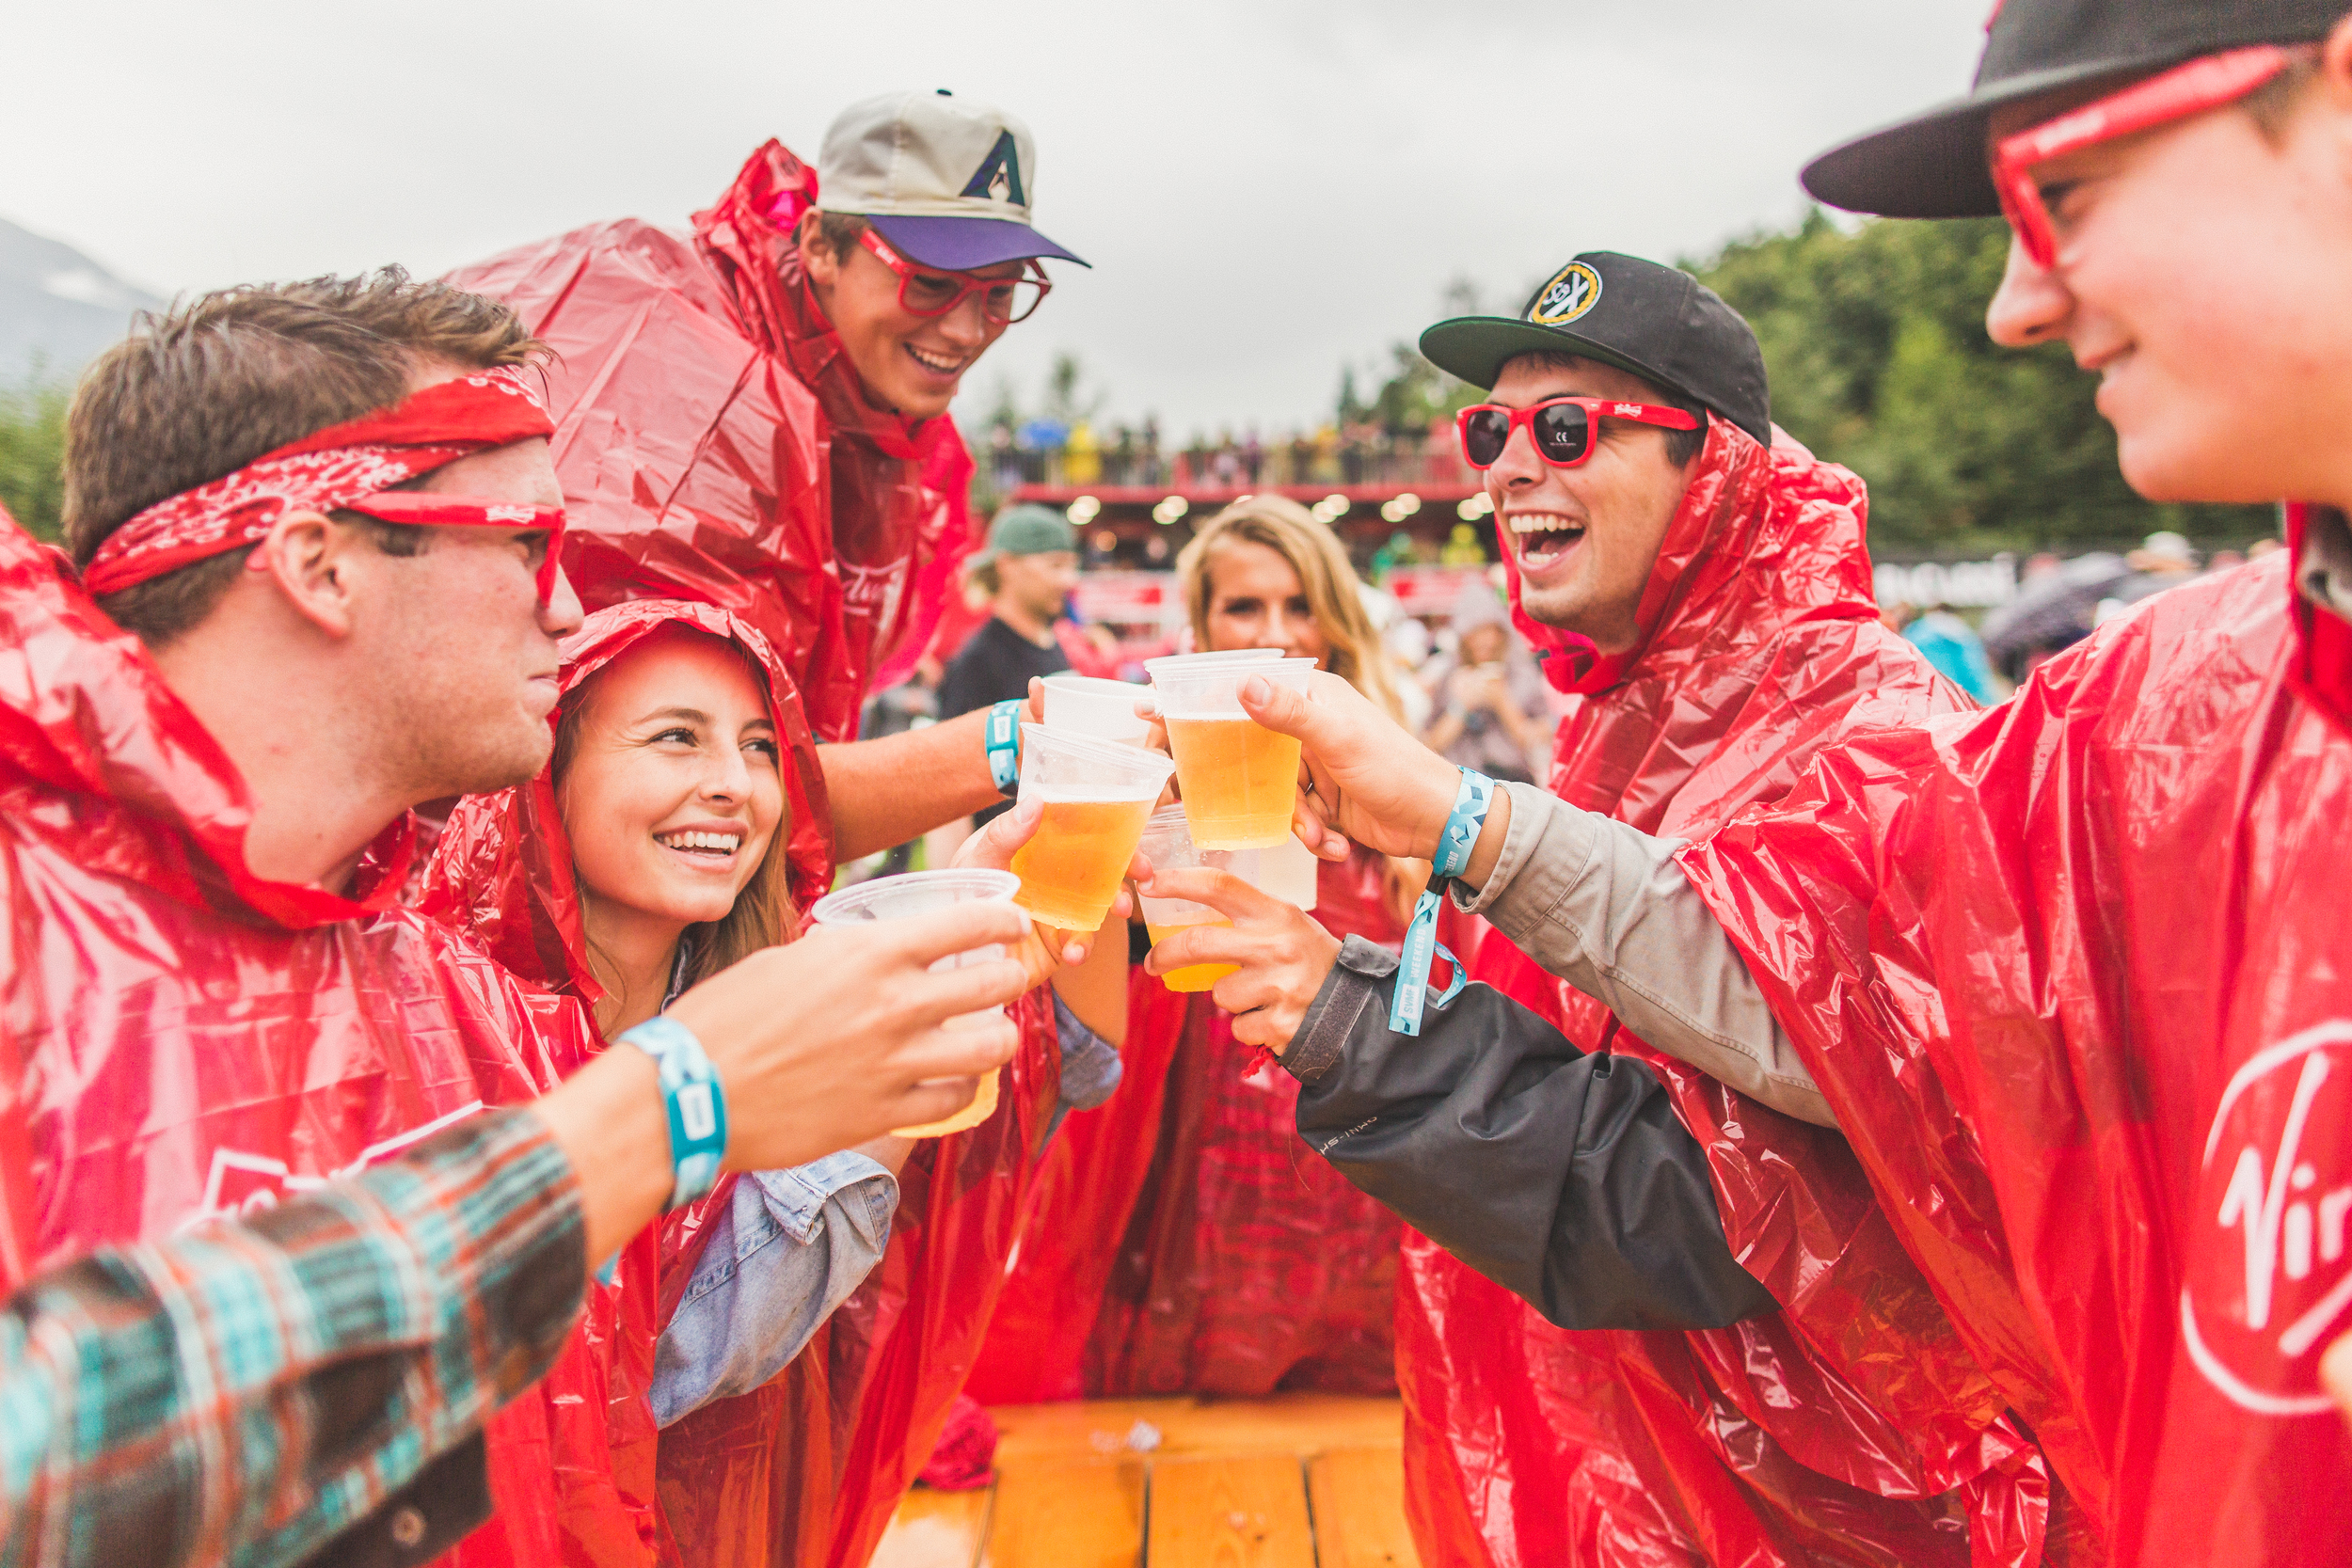 Cheers to a good day and some ice cold Budweiser.